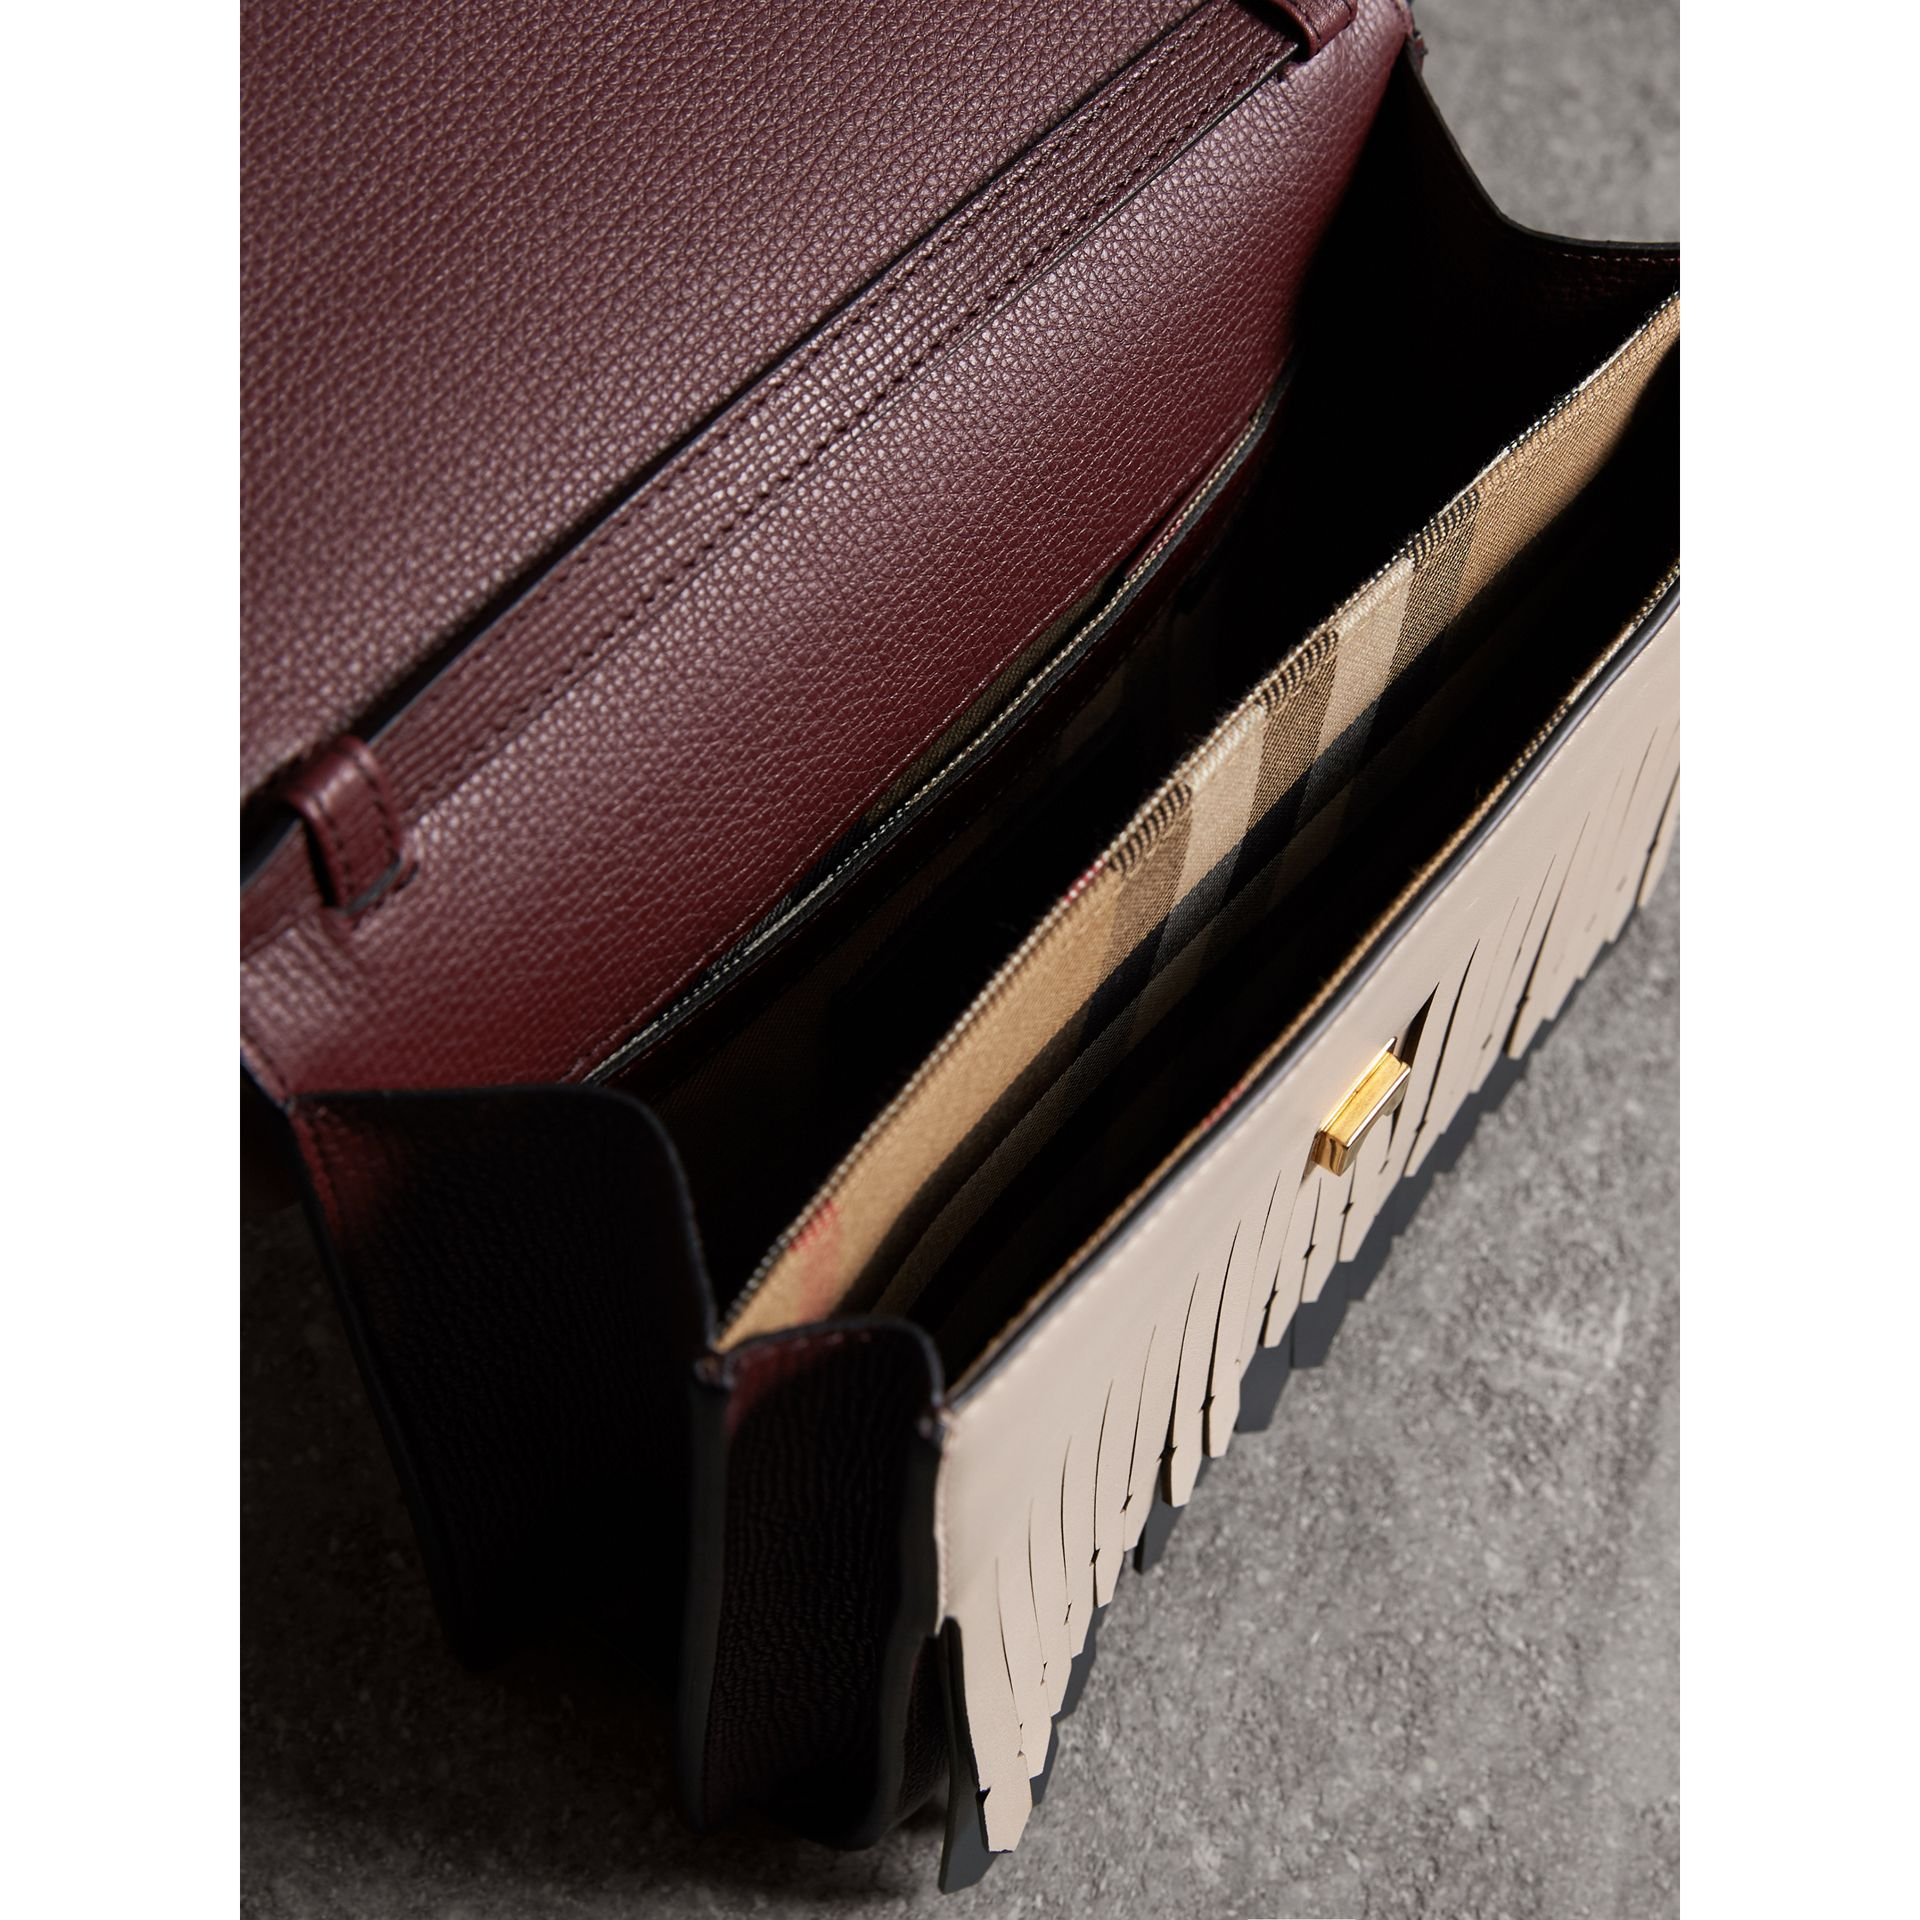 Brogue and Fringe Detail Leather Crossbody Bag in Mahogany Red - Women | Burberry Singapore - gallery image 4